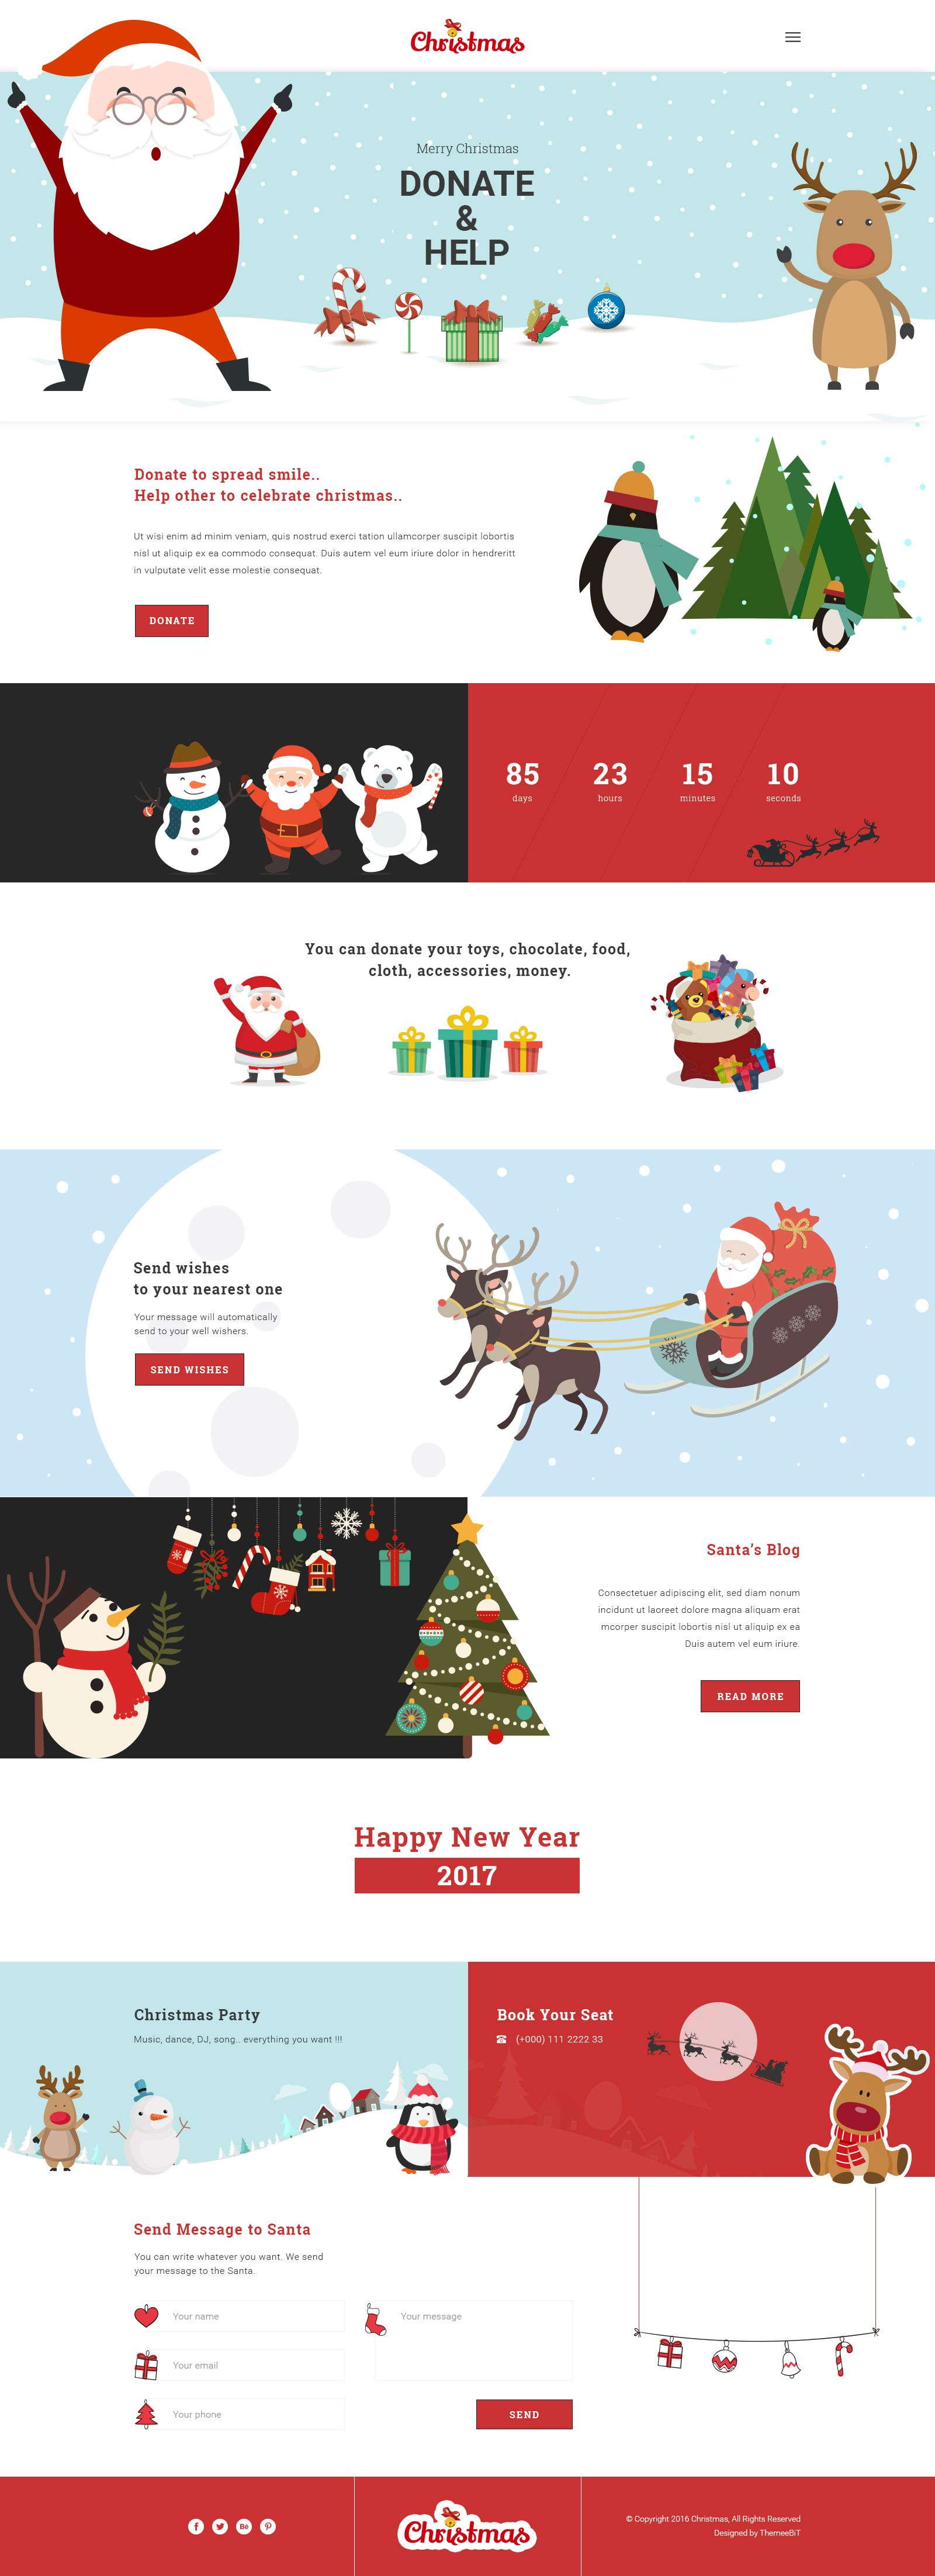 Christmas New Year Psd Template Wix Website Design Website Design Wix Templates